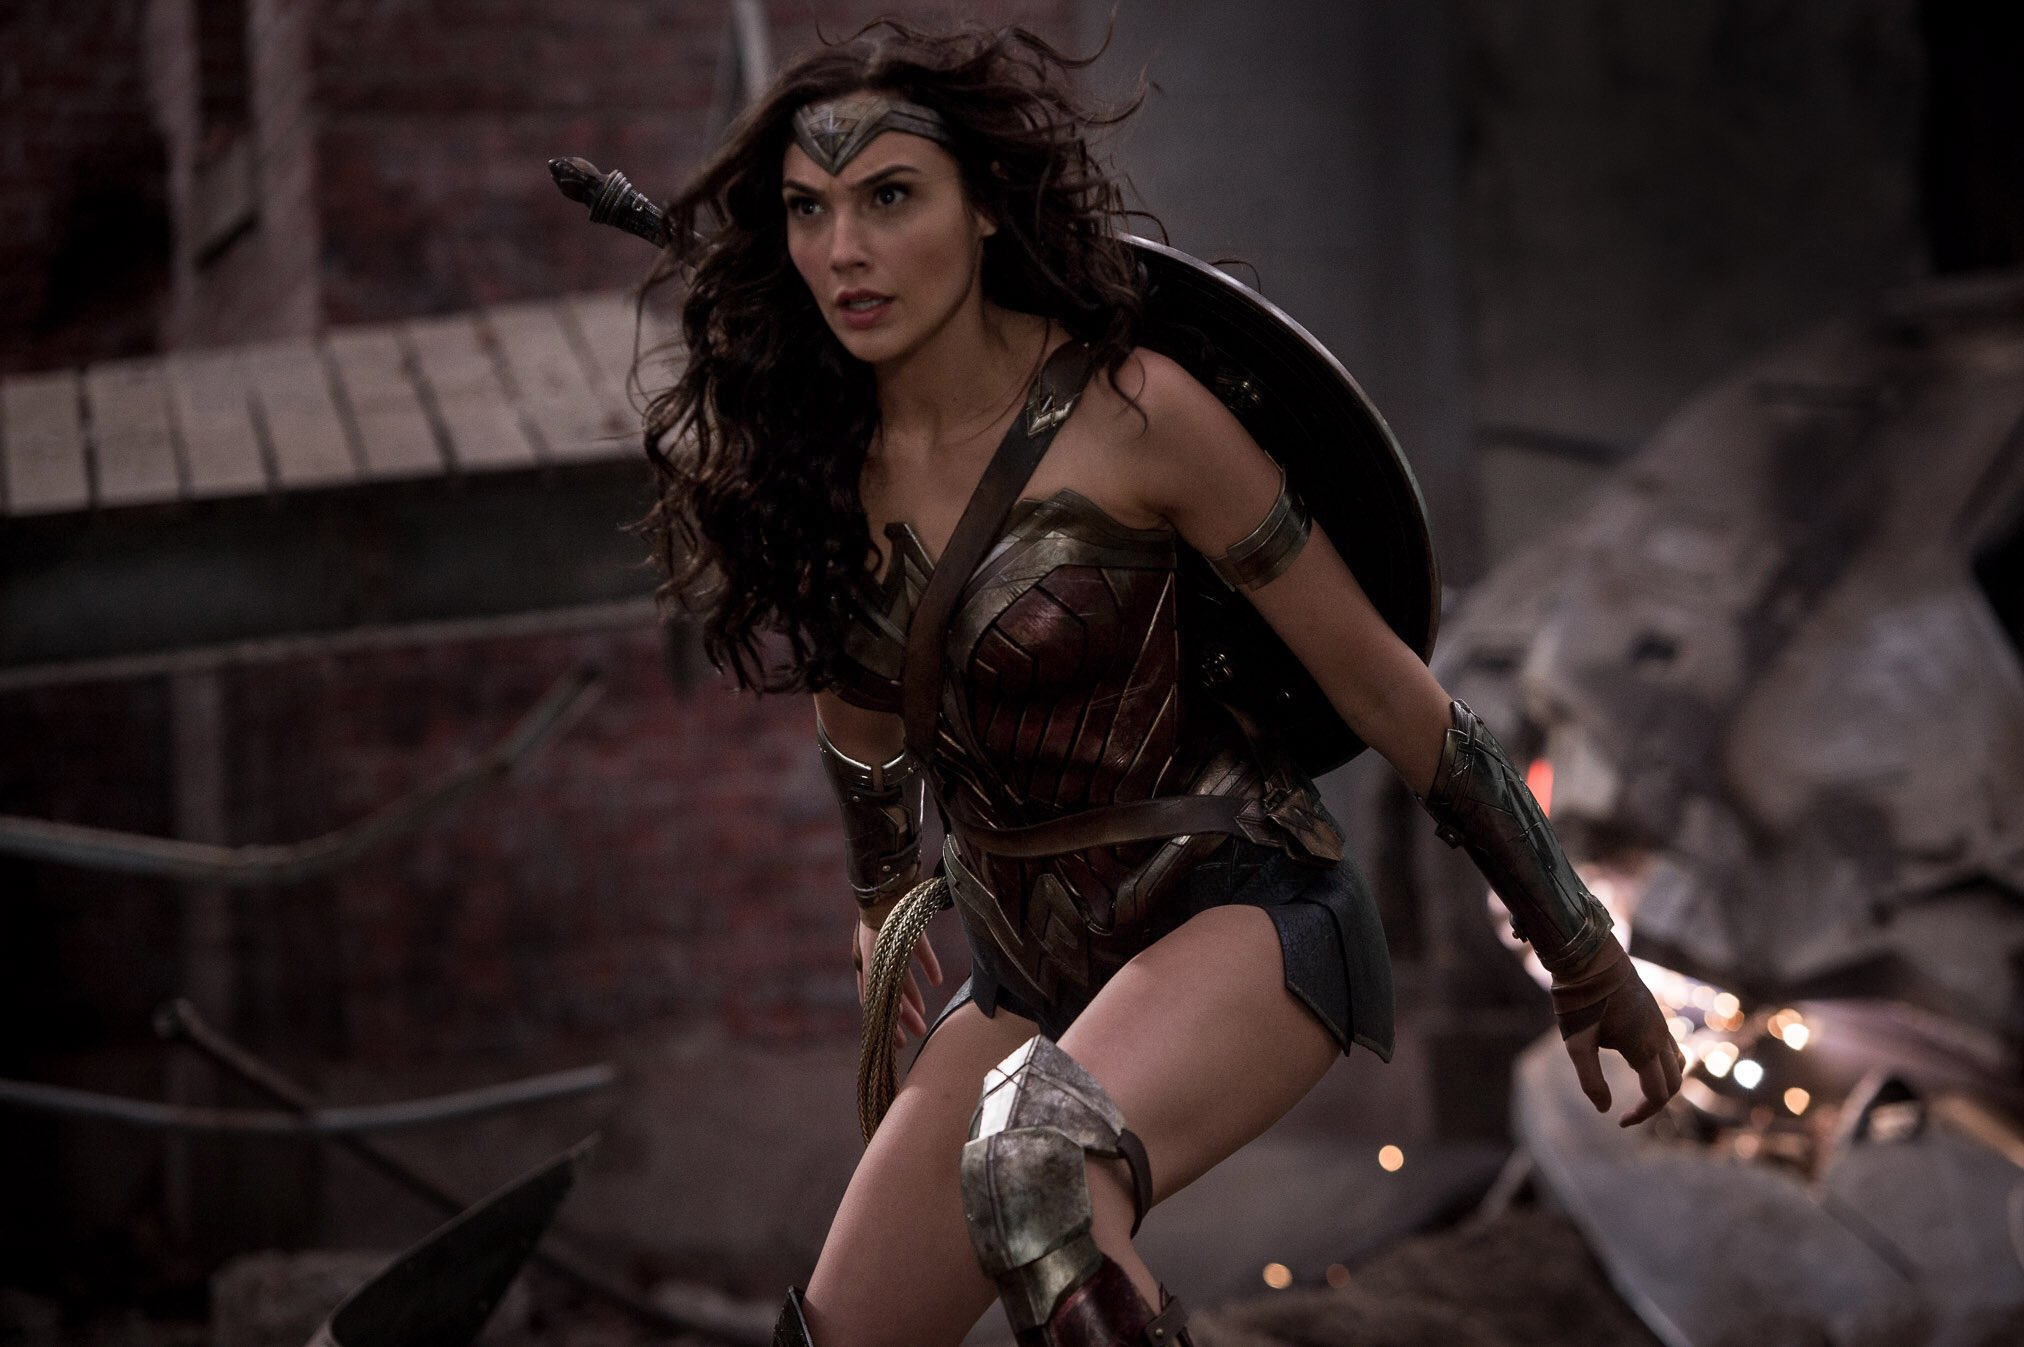 751 Wonder Woman Hd Wallpapers Background Images Wallpaper Abyss